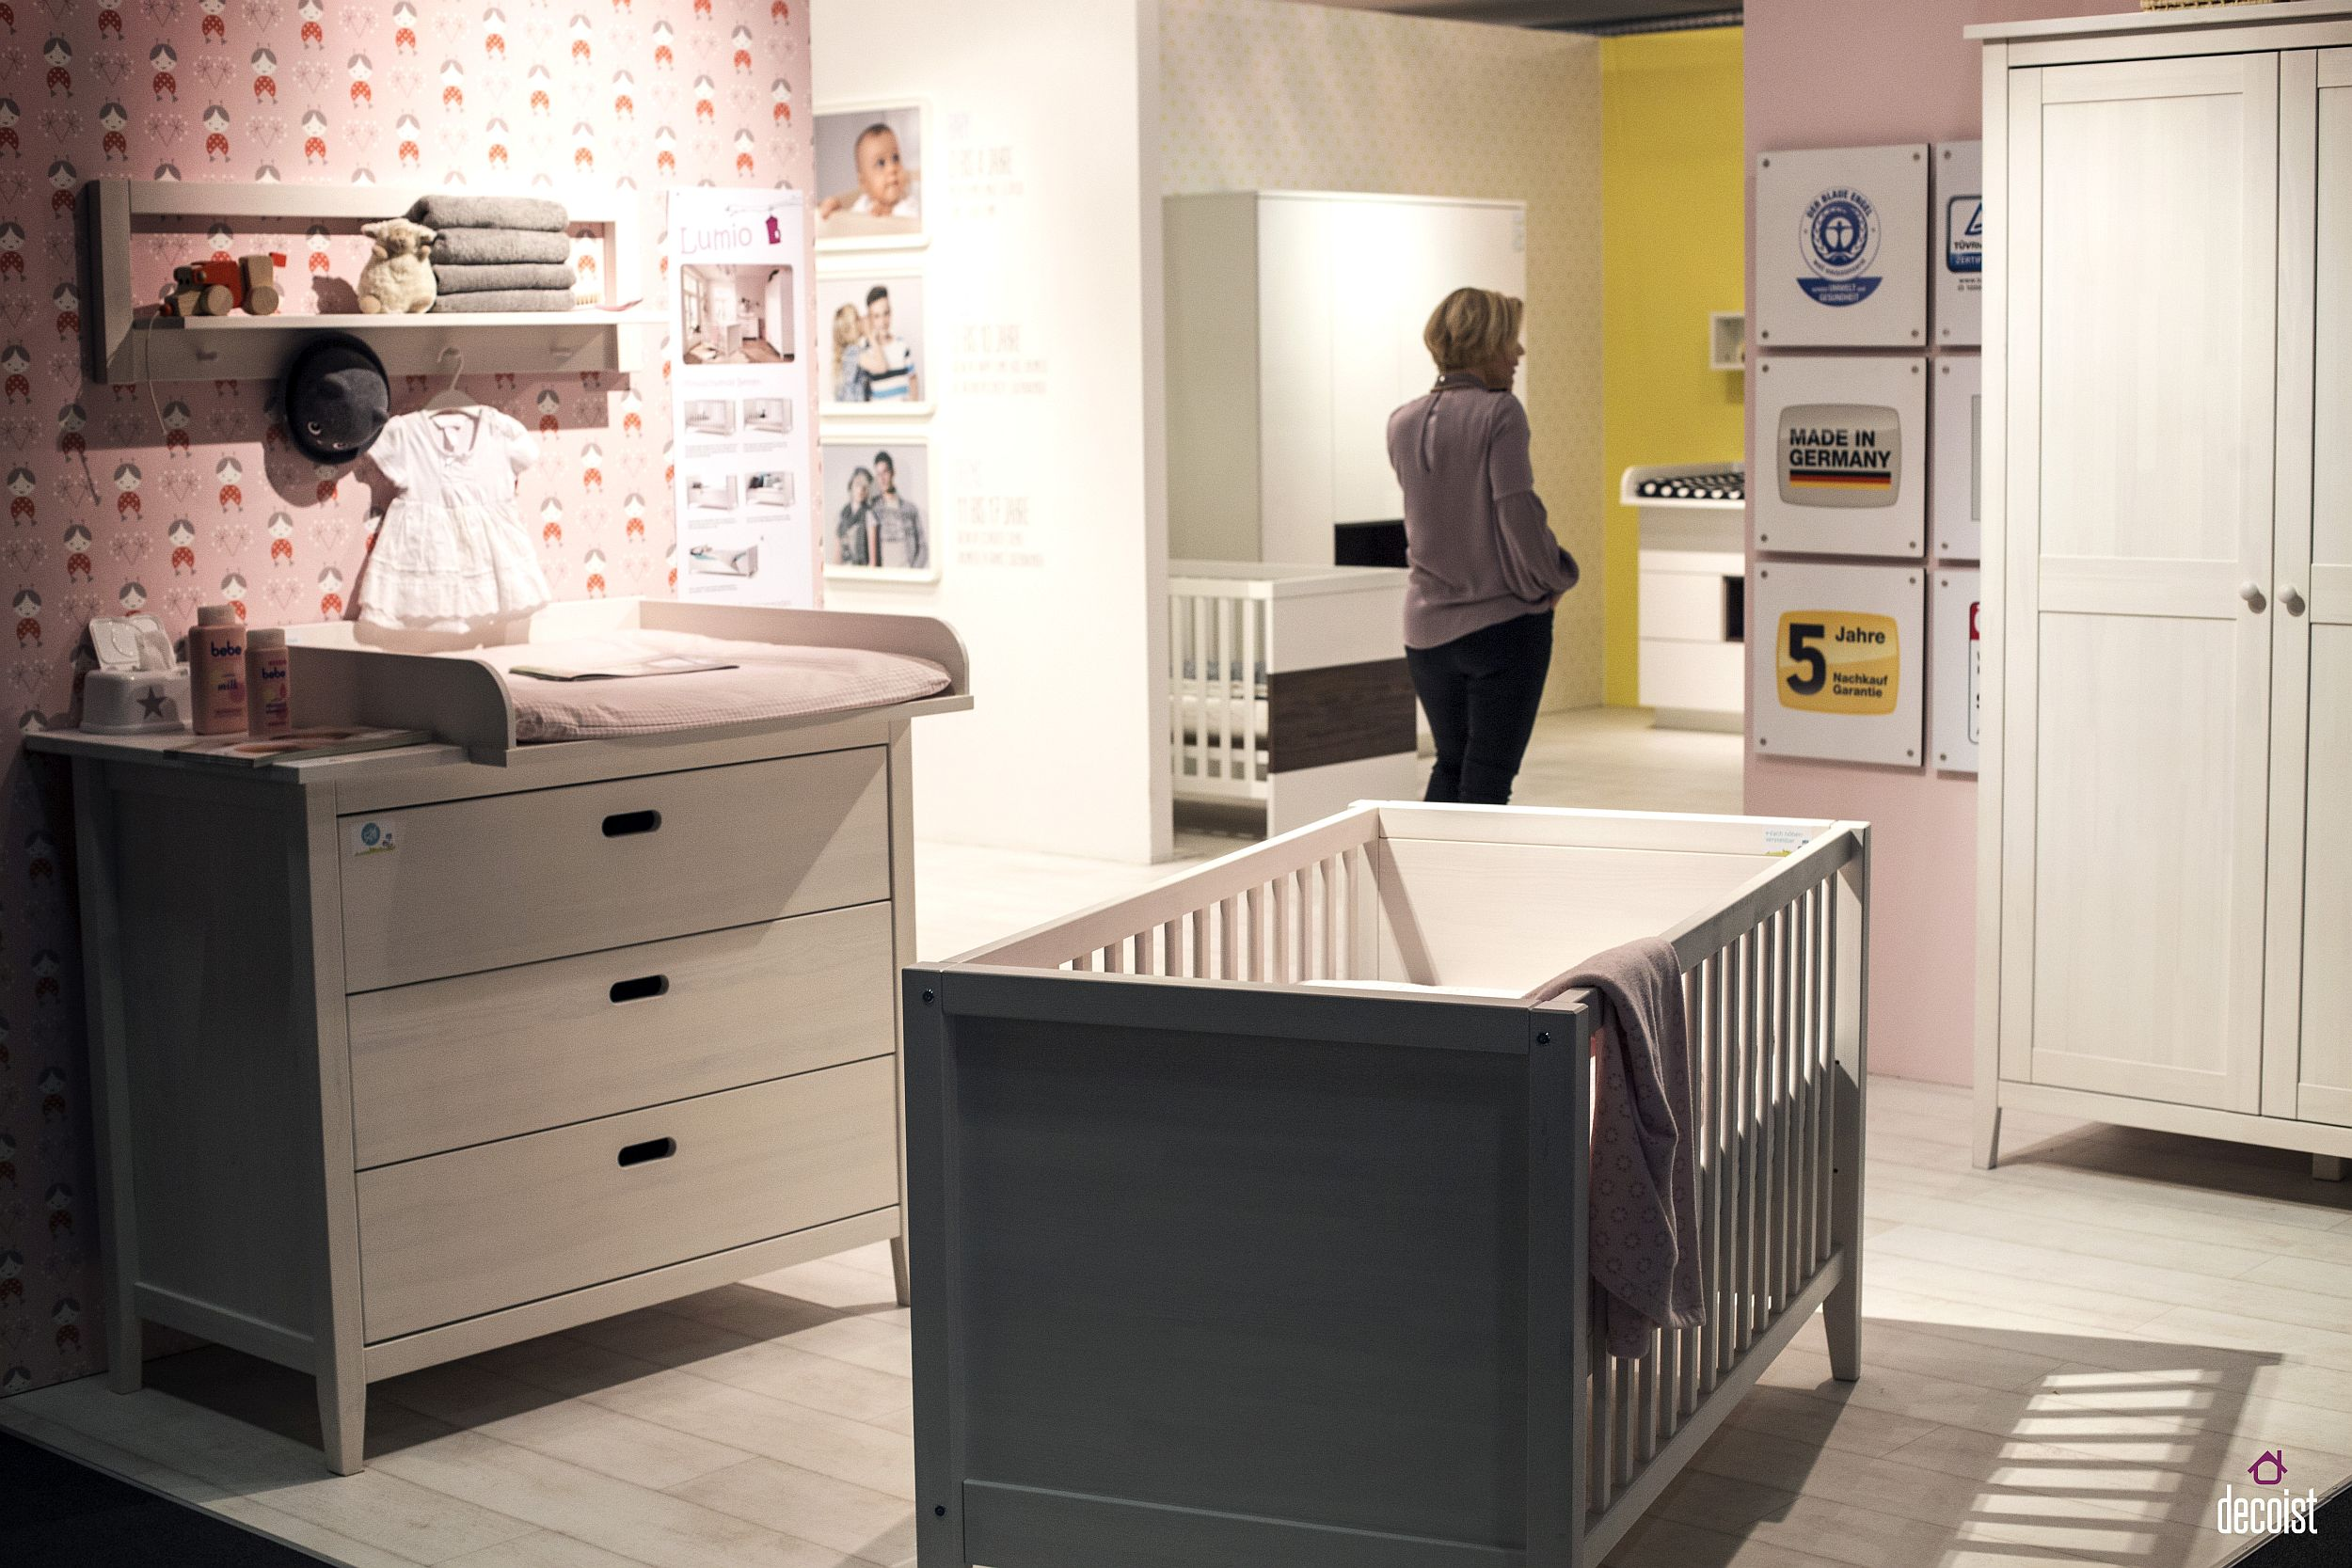 Contemporary nursery in pink with gray crib from Welle Mobel